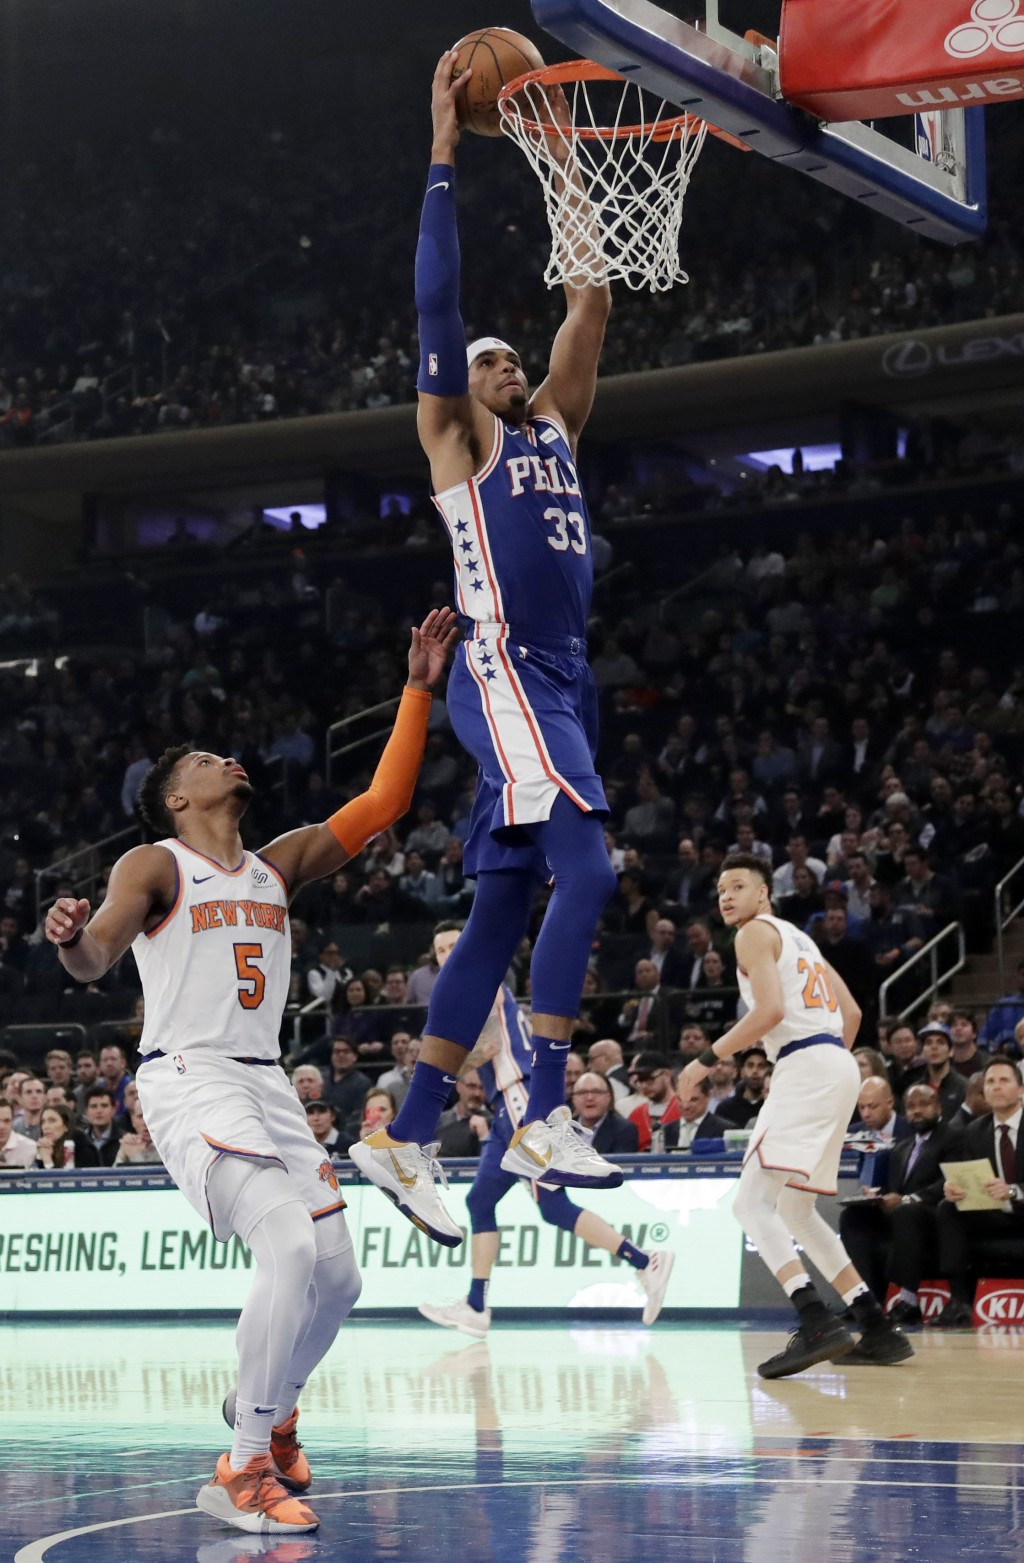 Philadelphia 76ers' Tobias Harris (33) drives past New York Knicks' Dennis Smith Jr. (5) during the first half of an NBA basketball game, Wednesday, F...